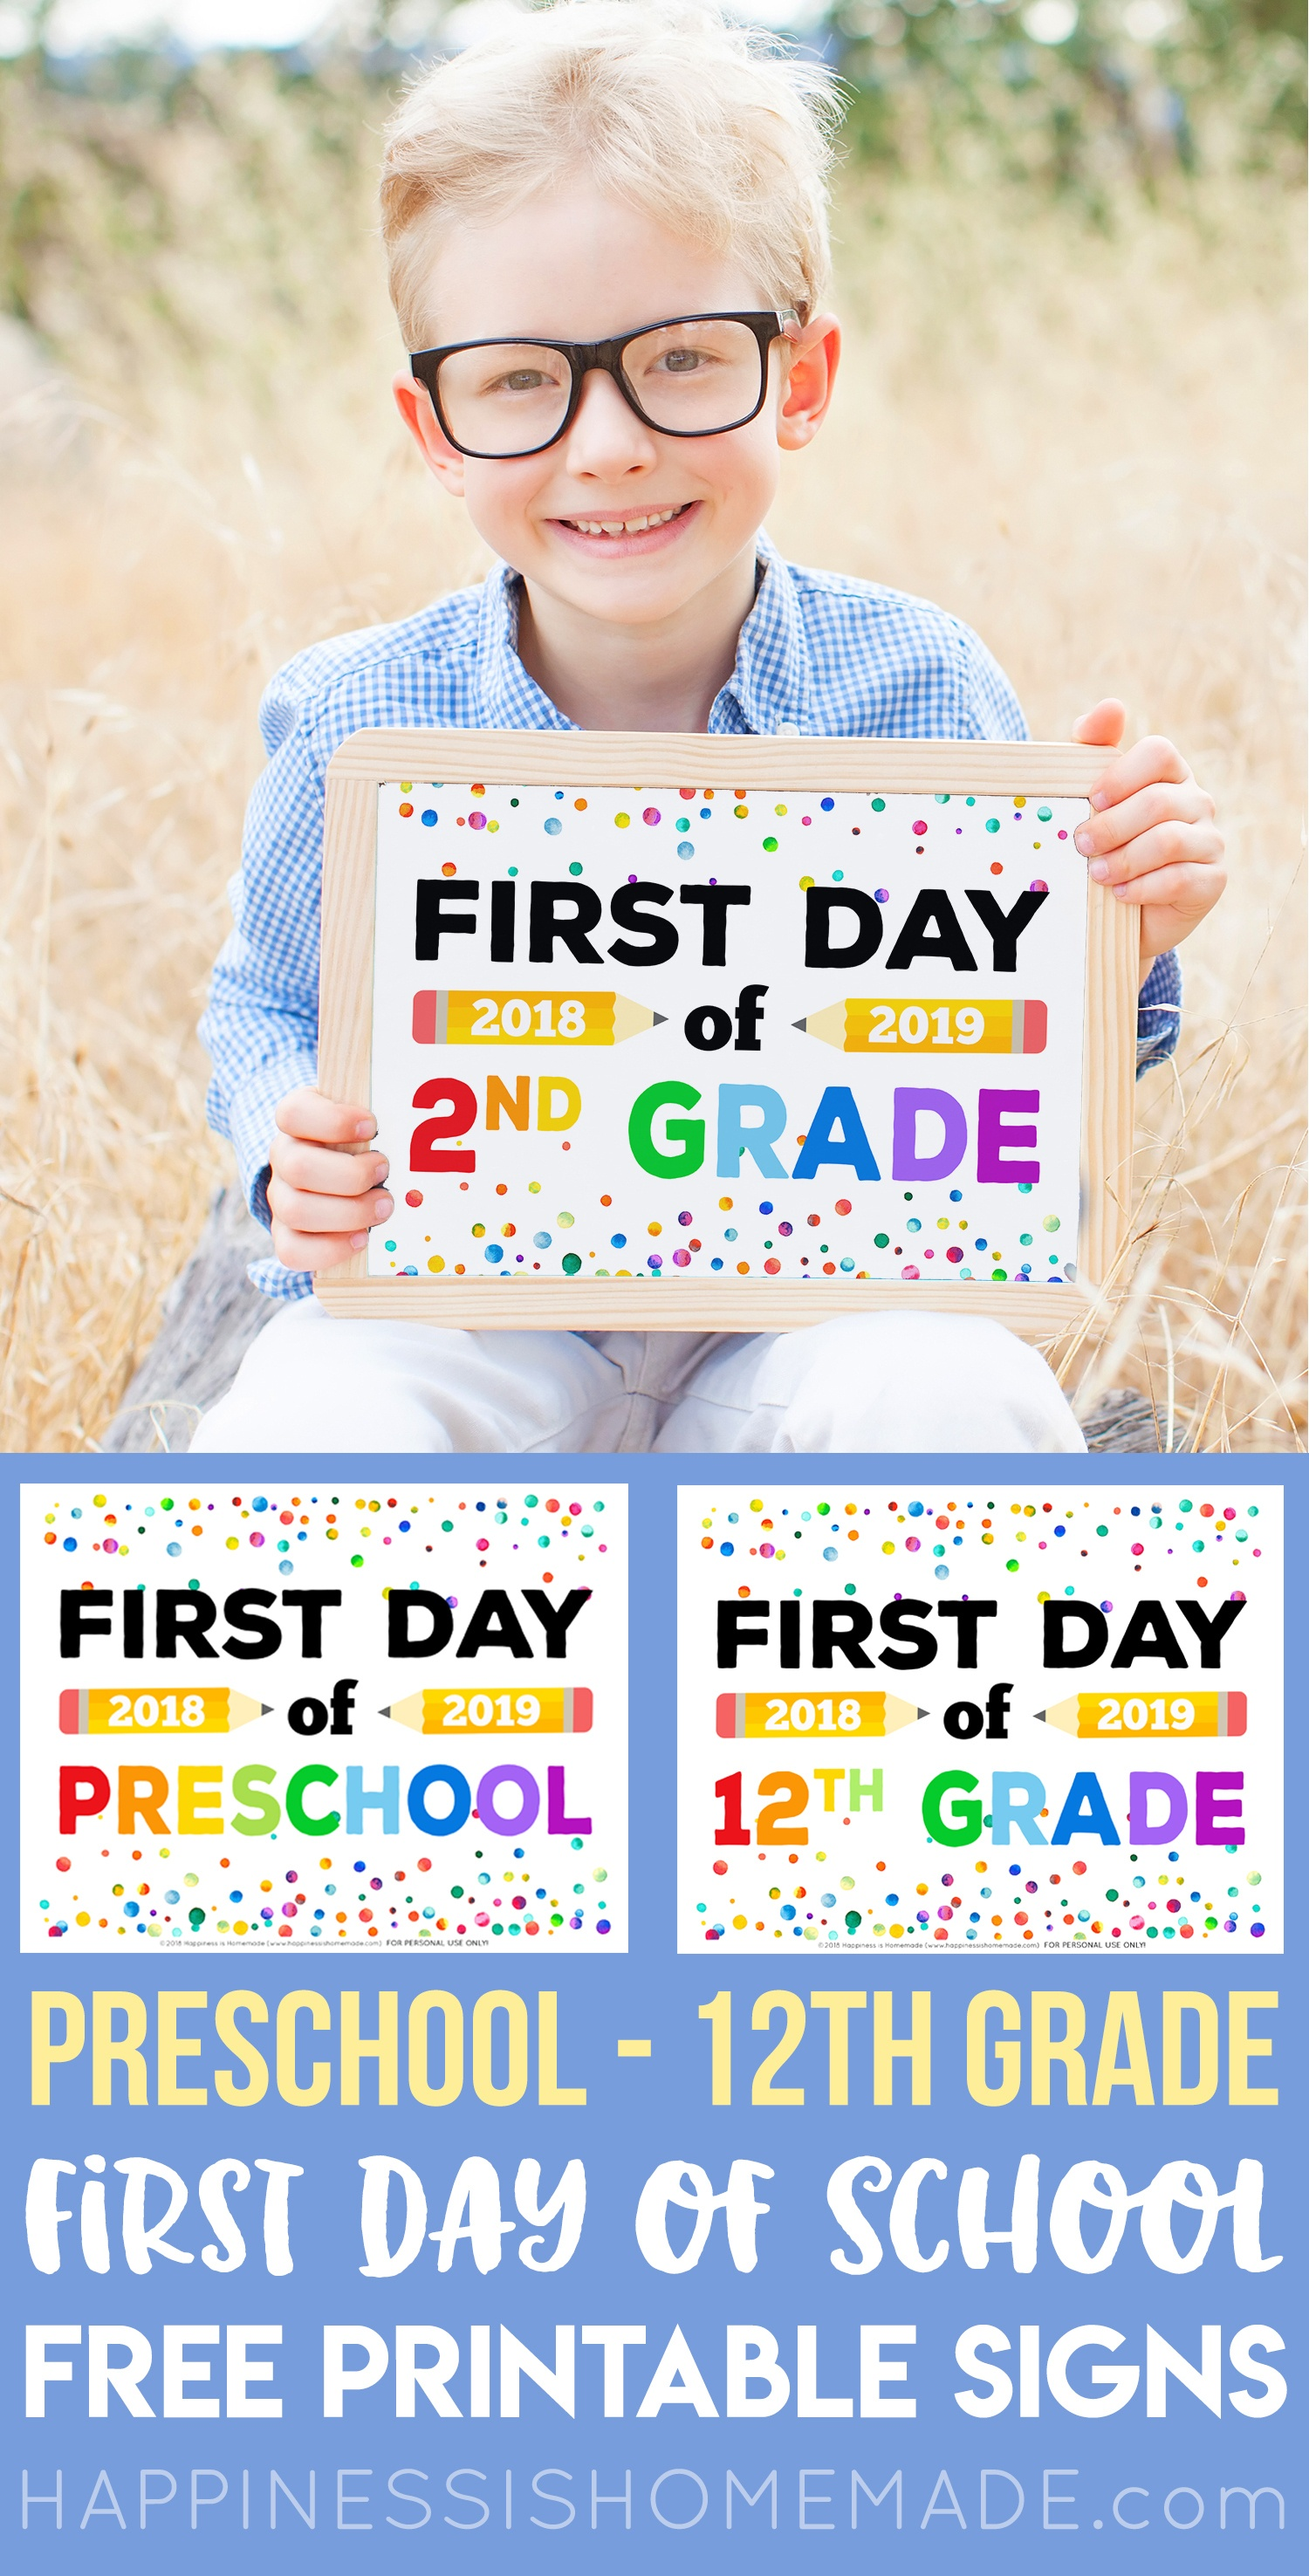 First Day Of School Signs - Free Printables - Happiness Is Homemade - Free Printable First Day Of School Signs 2018